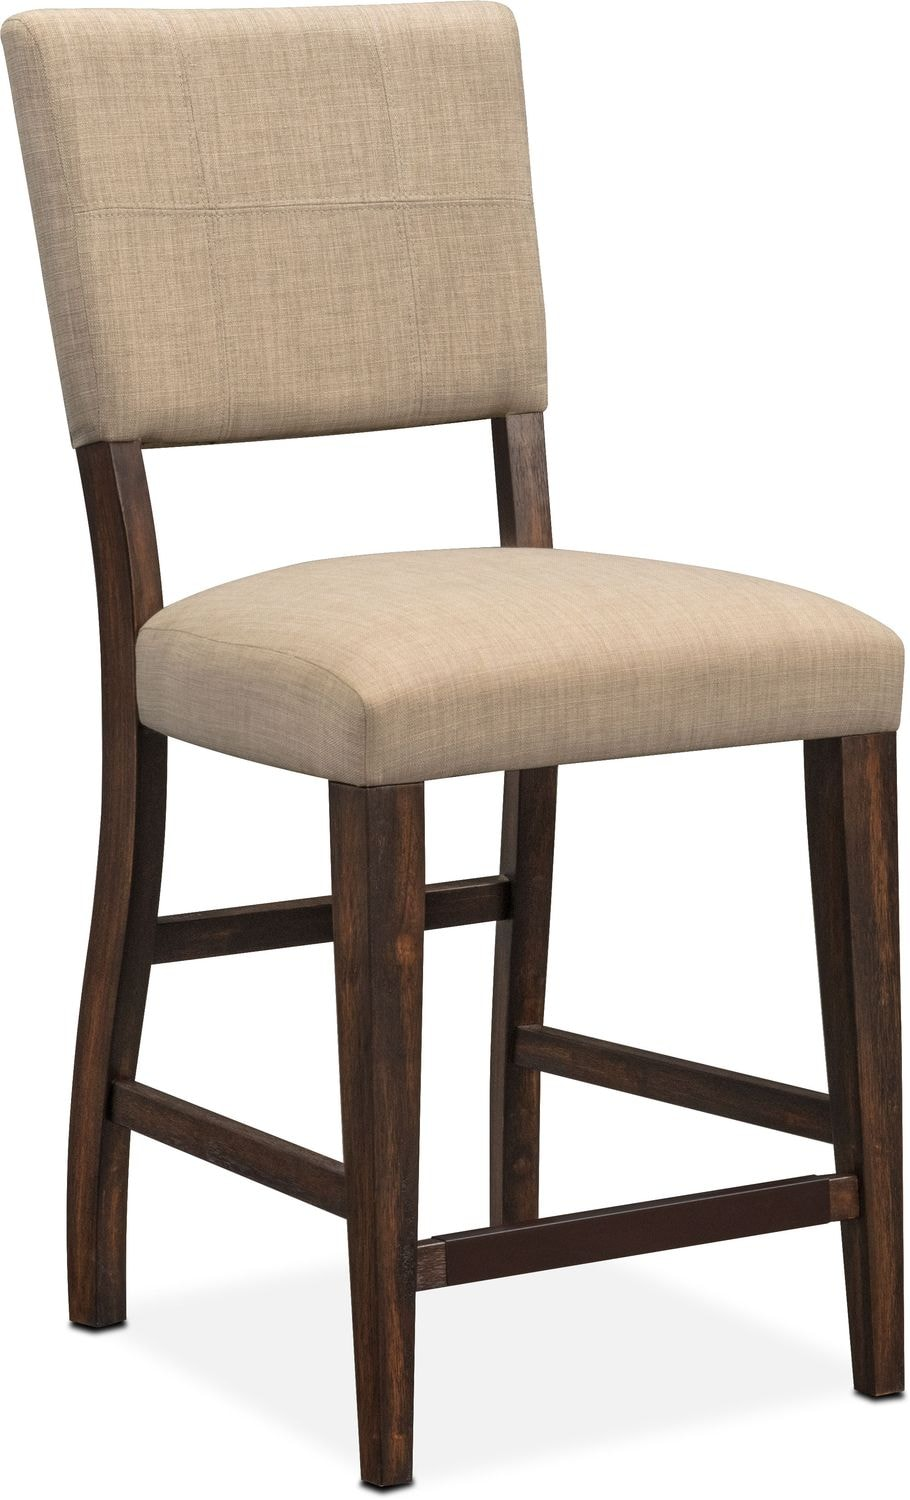 Dining Room Furniture - Tribeca Counter-Height Upholstered Side Chair - Tobacco